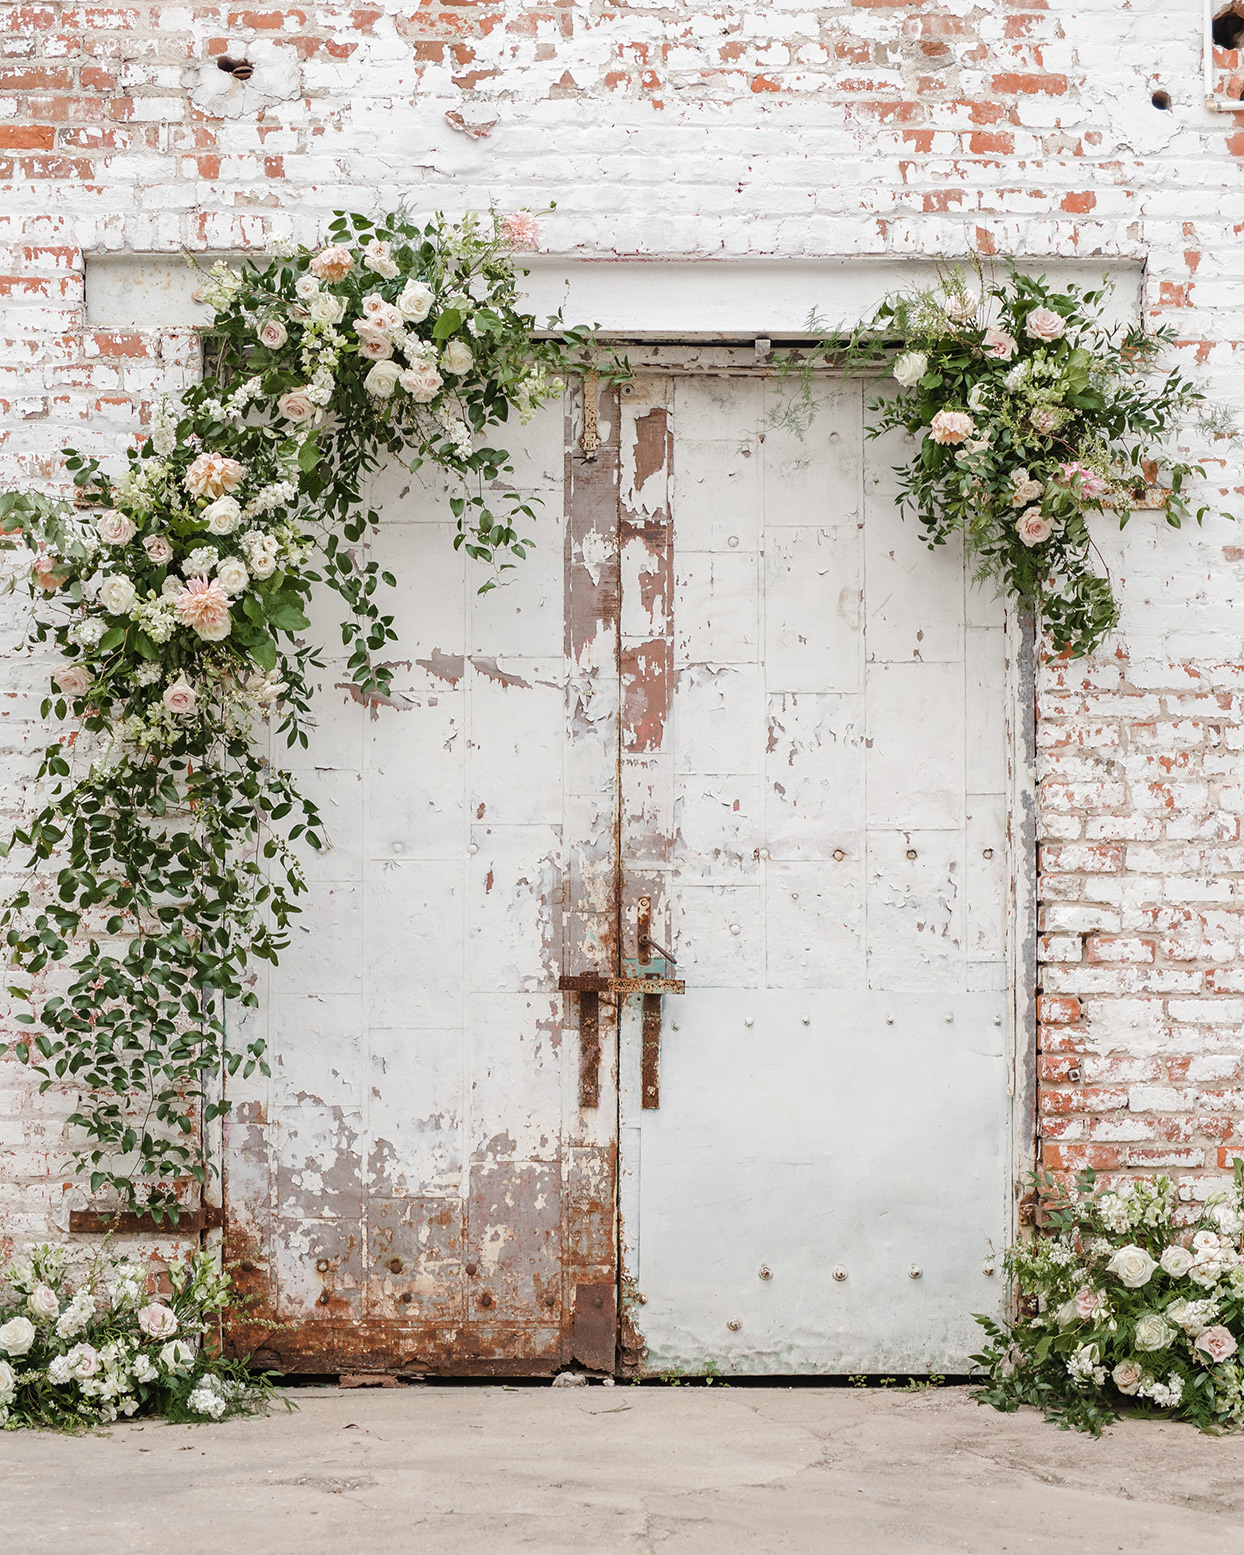 outdoor courtyard area of warehouse with flowers